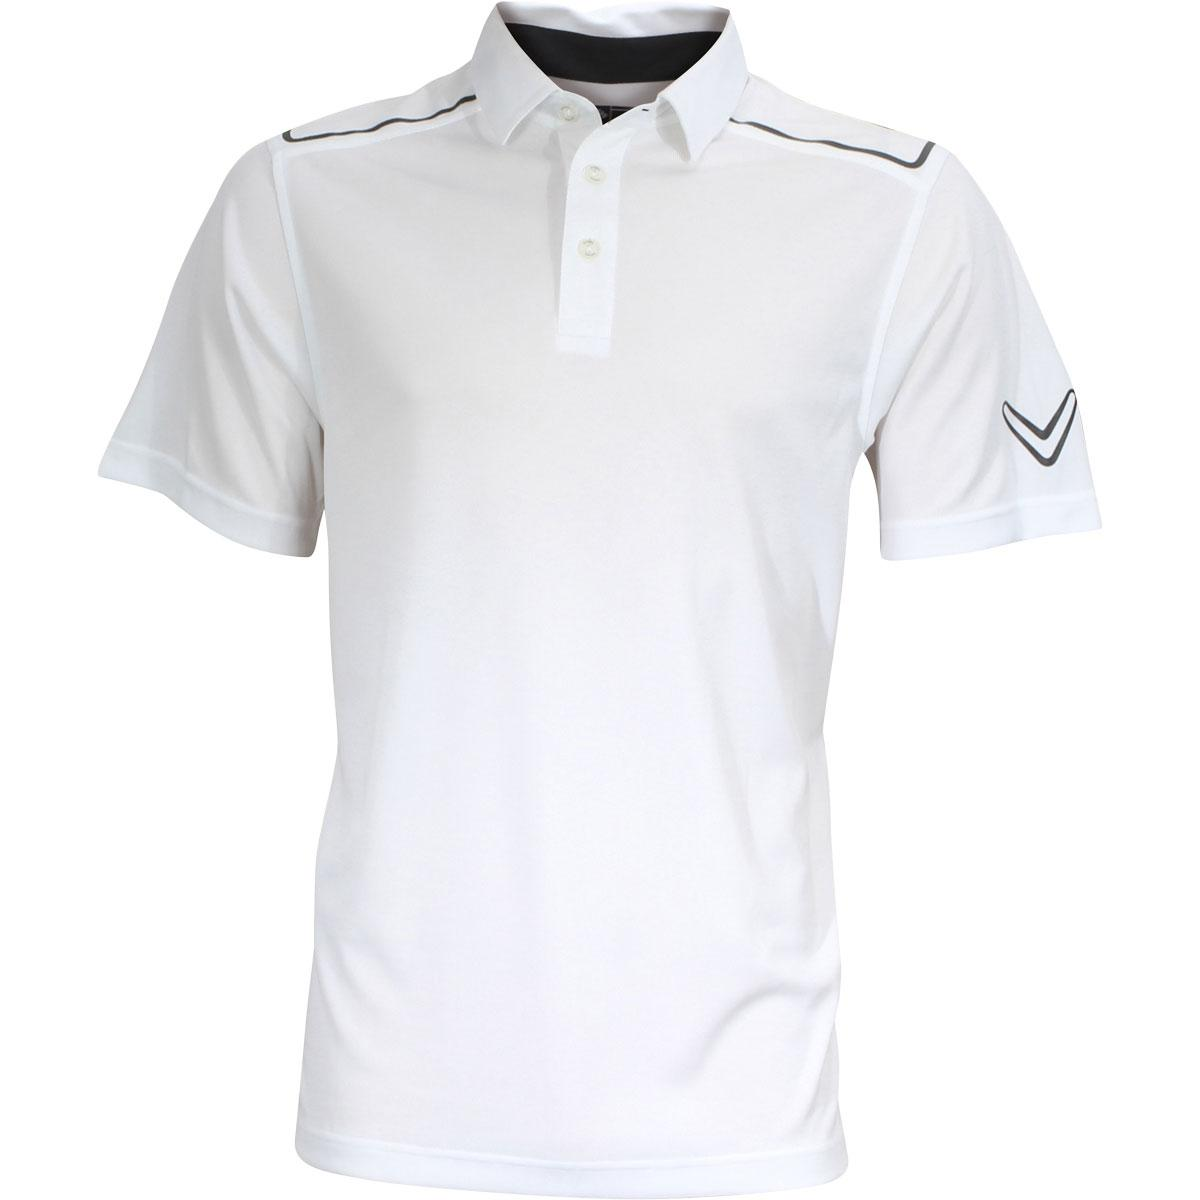 Image of Callaway Men's Solid Blocked Polo Short Sleeve Shirt - Bright White - Classic Fit